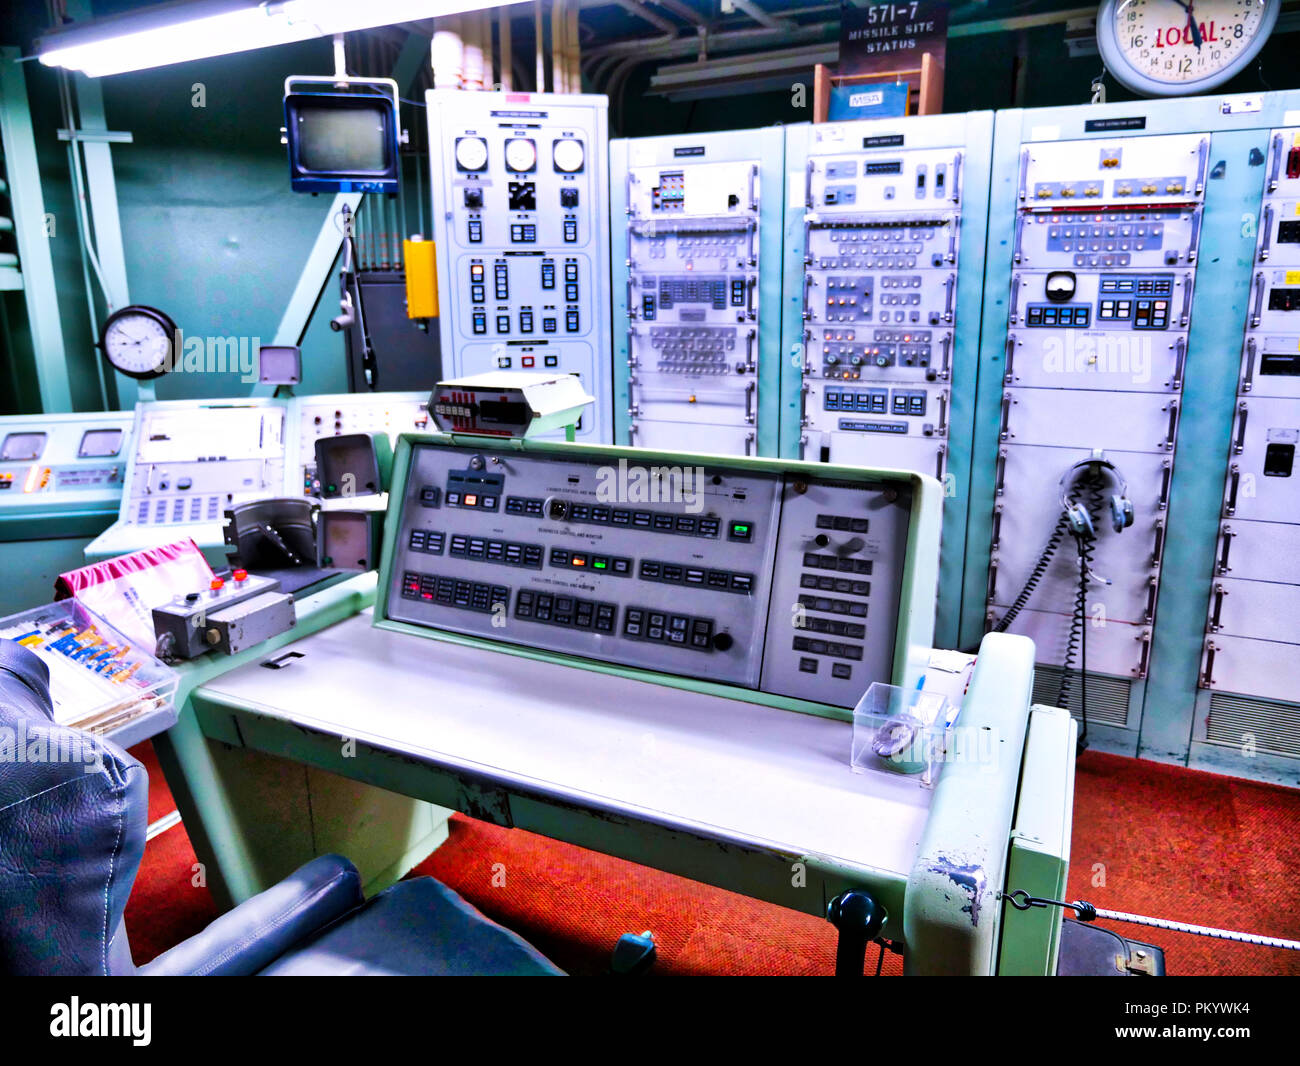 Missile Silo Stock Photos & Missile Silo Stock Images - Alamy